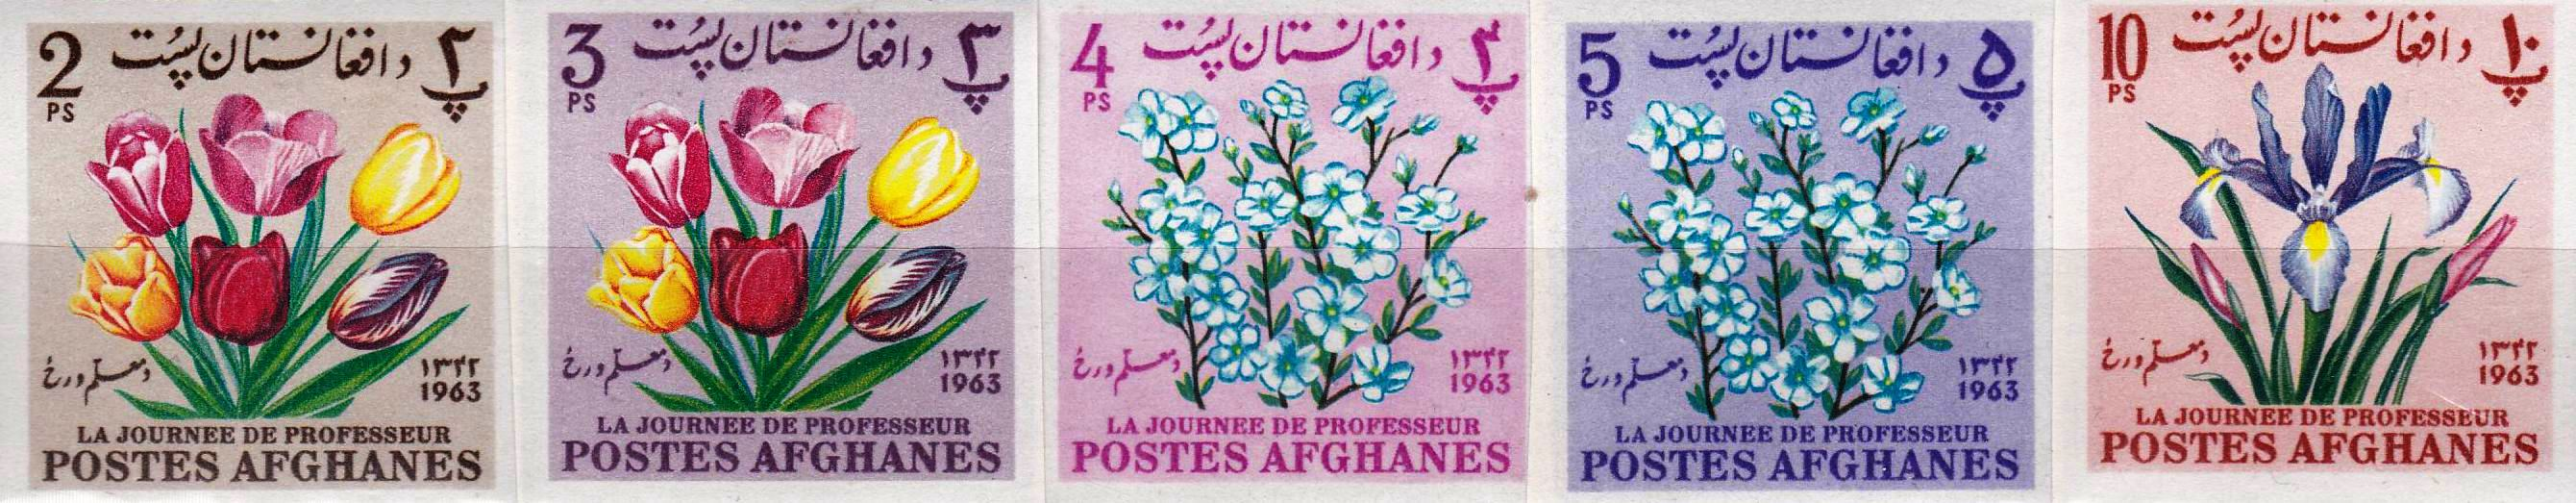 Afghanistan 1964 Stamps Teachers Day Flowers